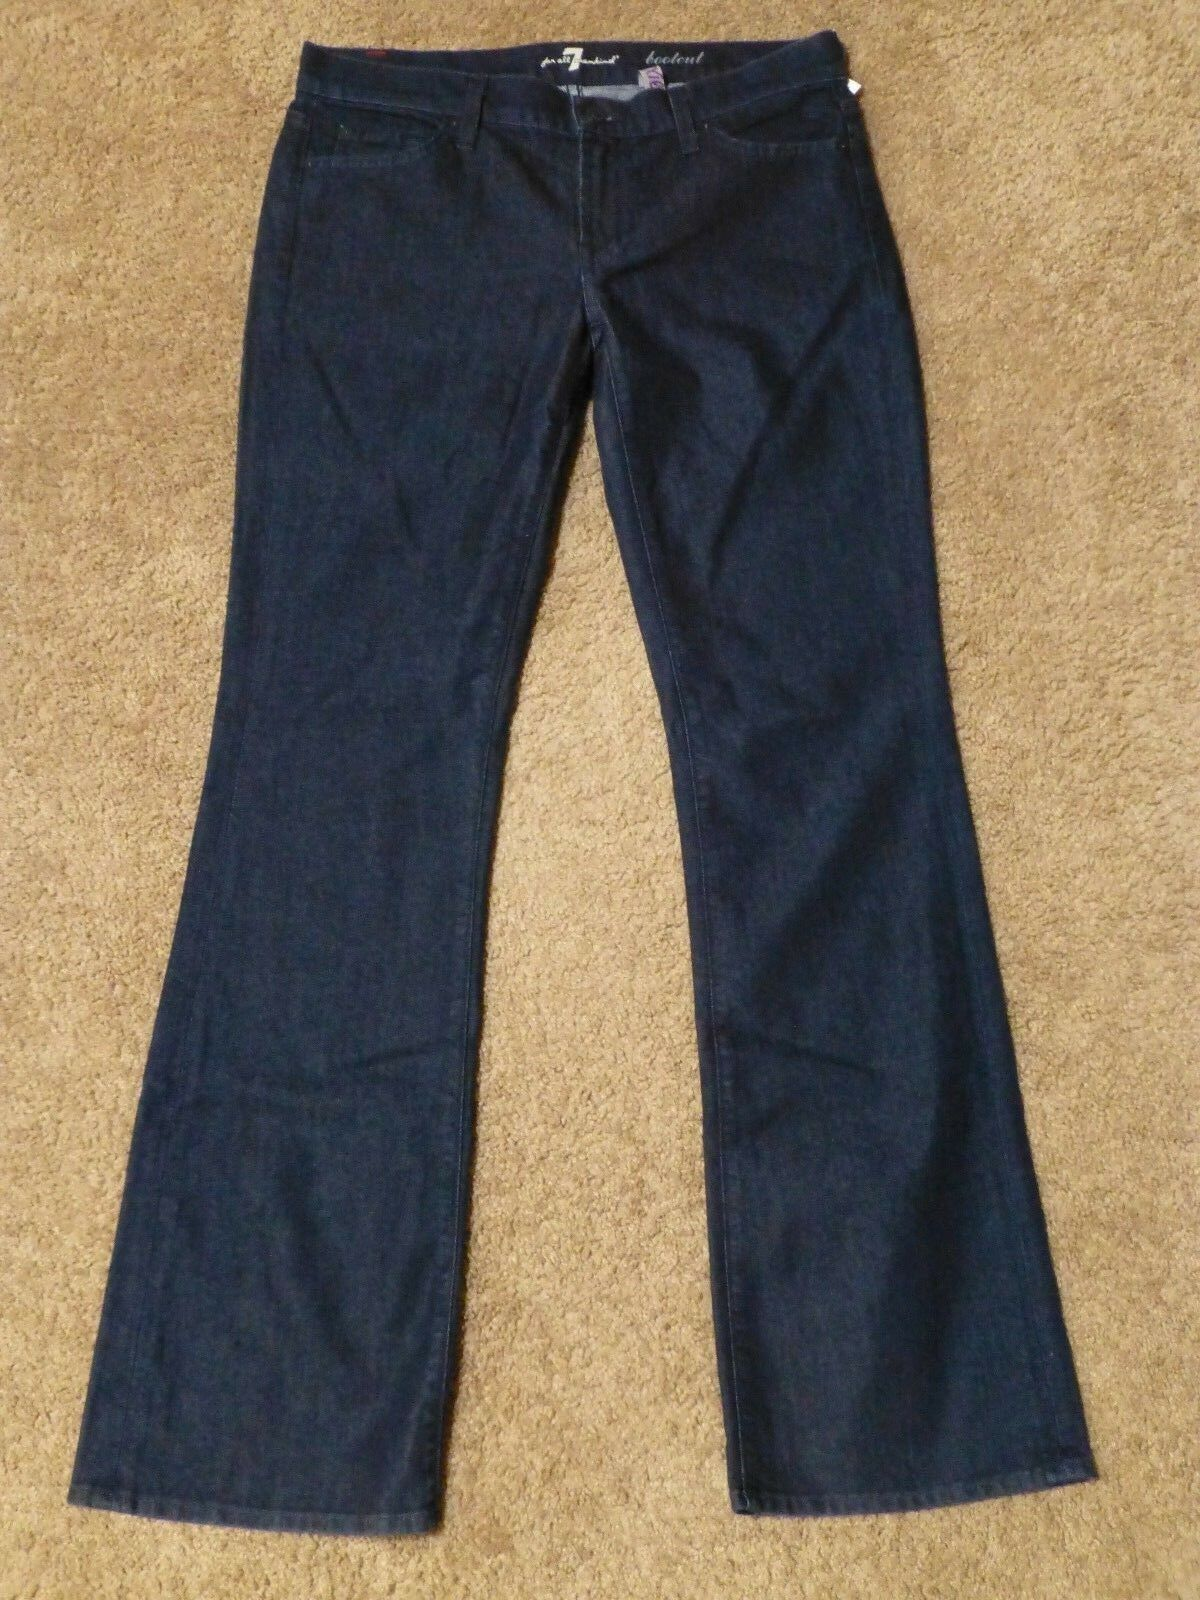 (29) NWOT 7 For All Mankind LEXIE BOOTCUT PETITE IN PORTUGAL Dark Wash Sz 29